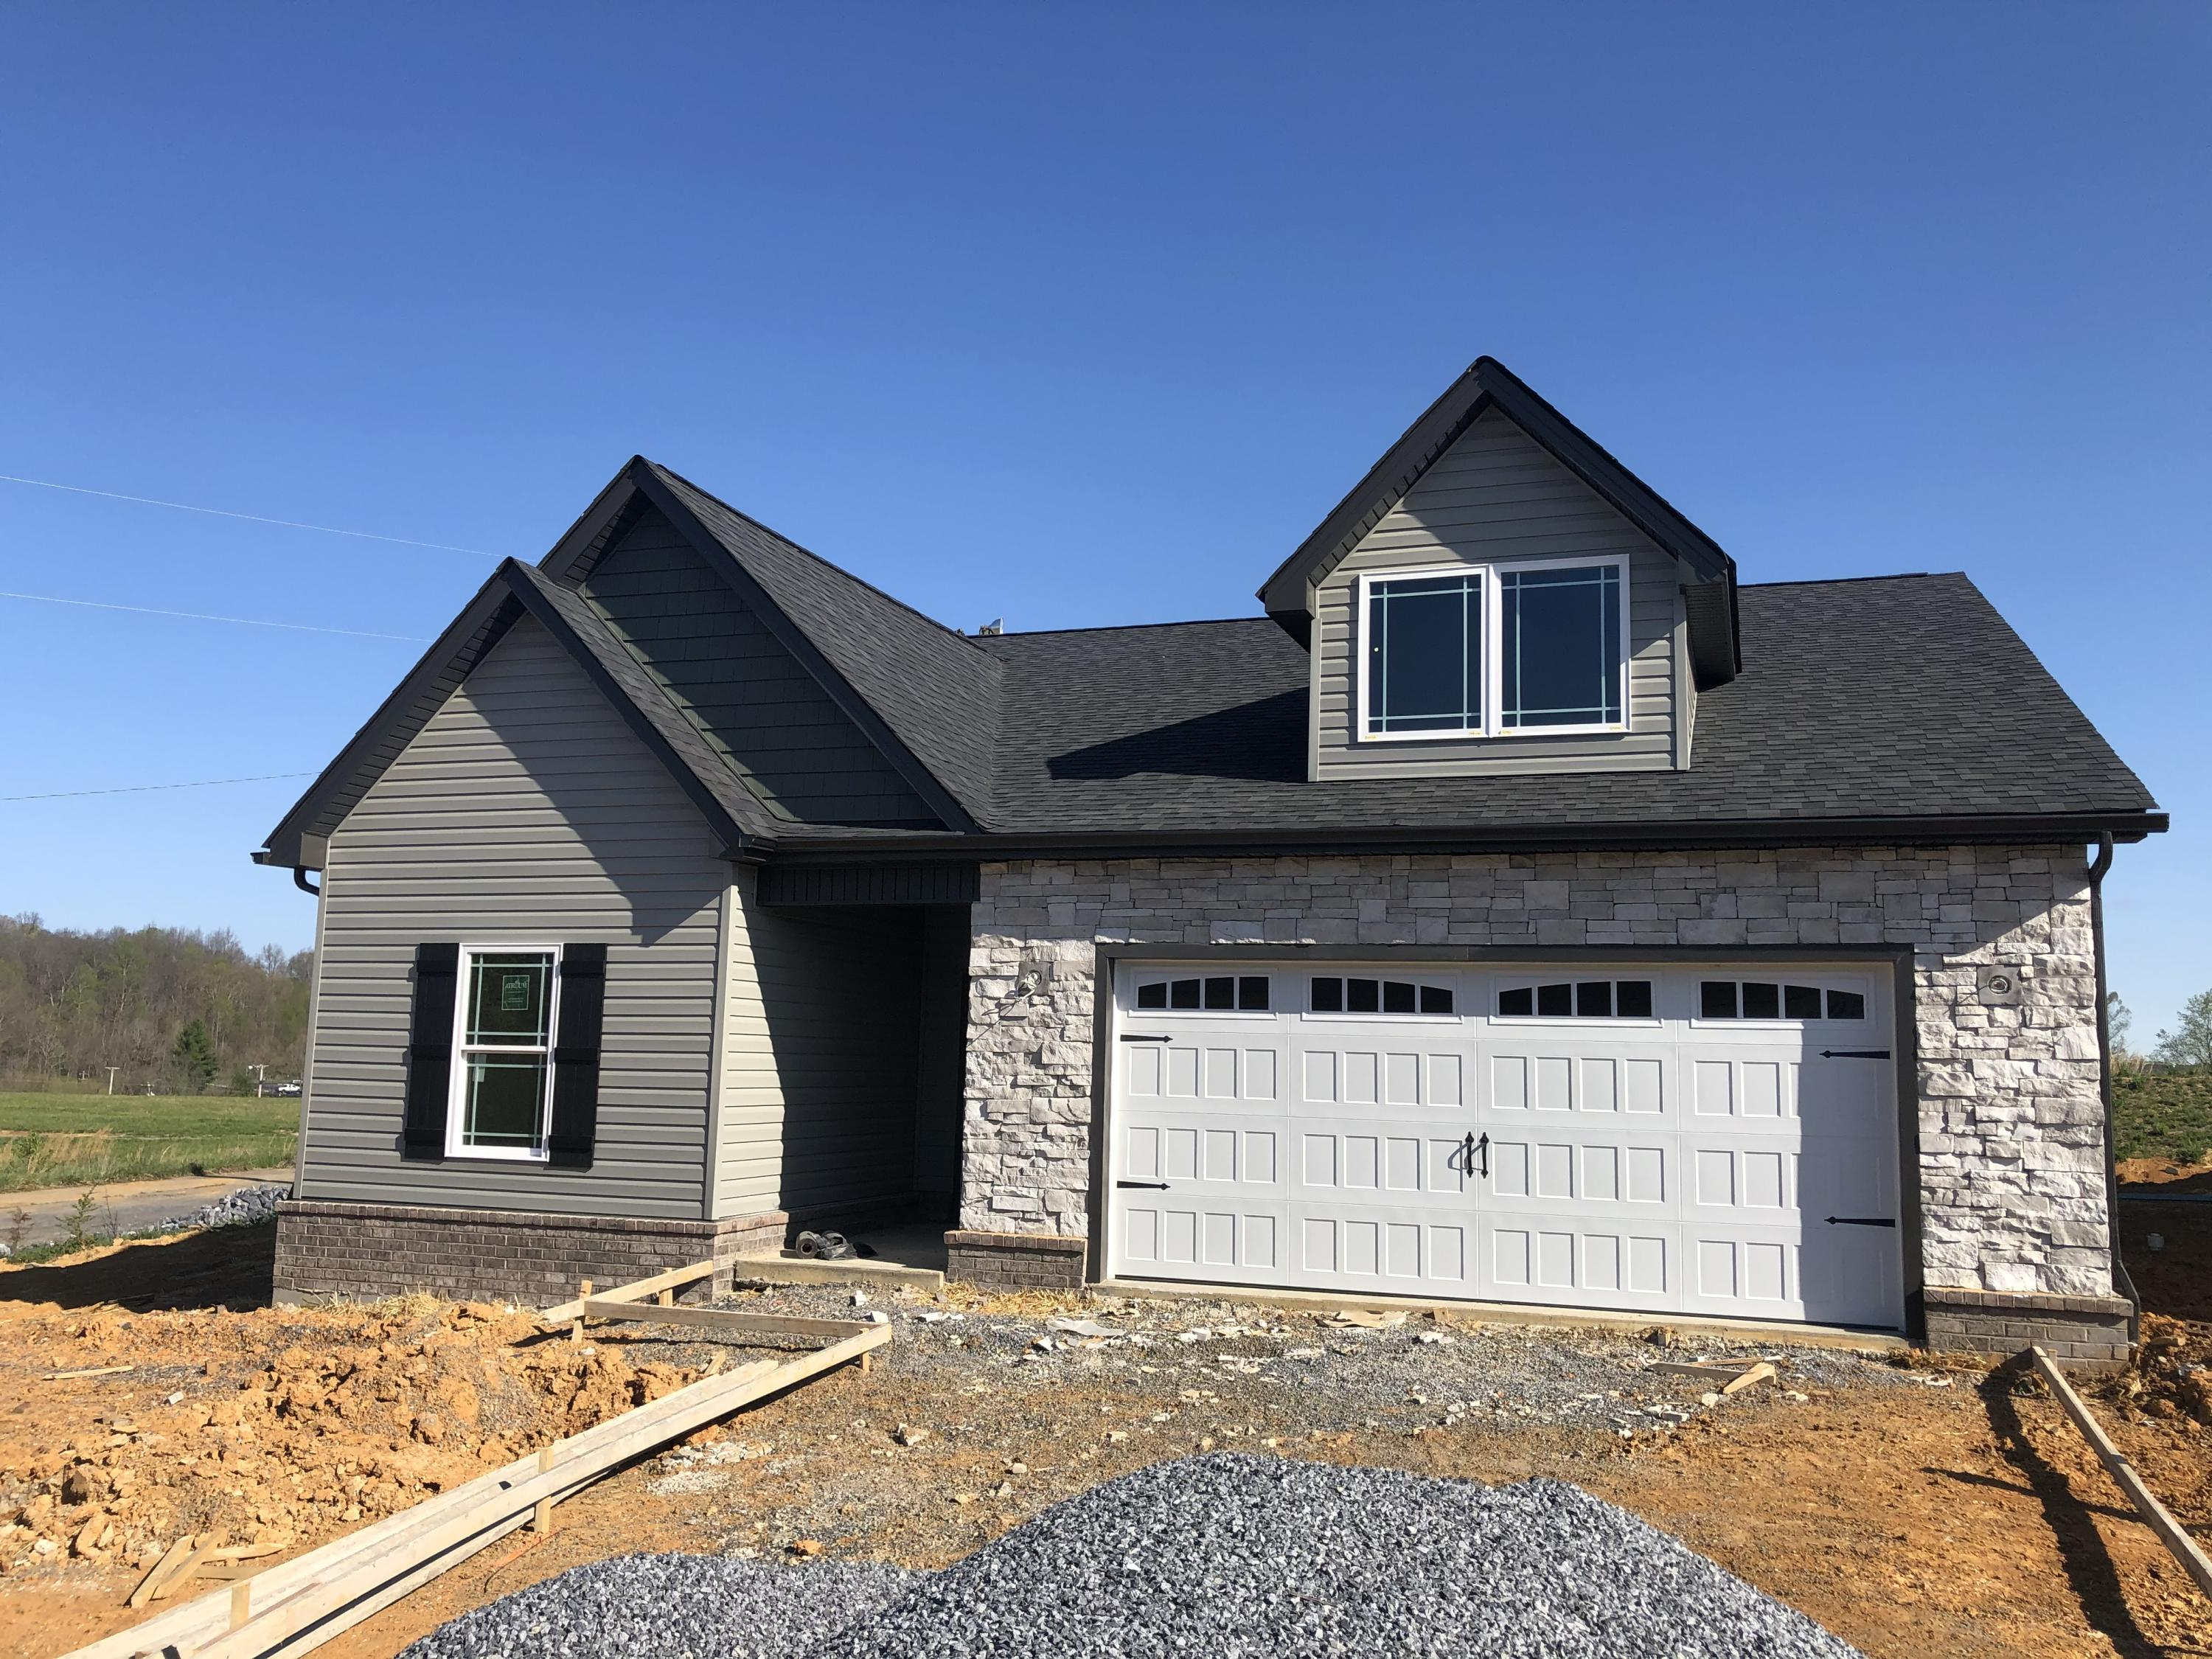 232 Gunners Way, Gray, Tennessee 37615, 3 Bedrooms Bedrooms, ,2 BathroomsBathrooms,Single Family,For Sale,232 Gunners Way,1,9920883